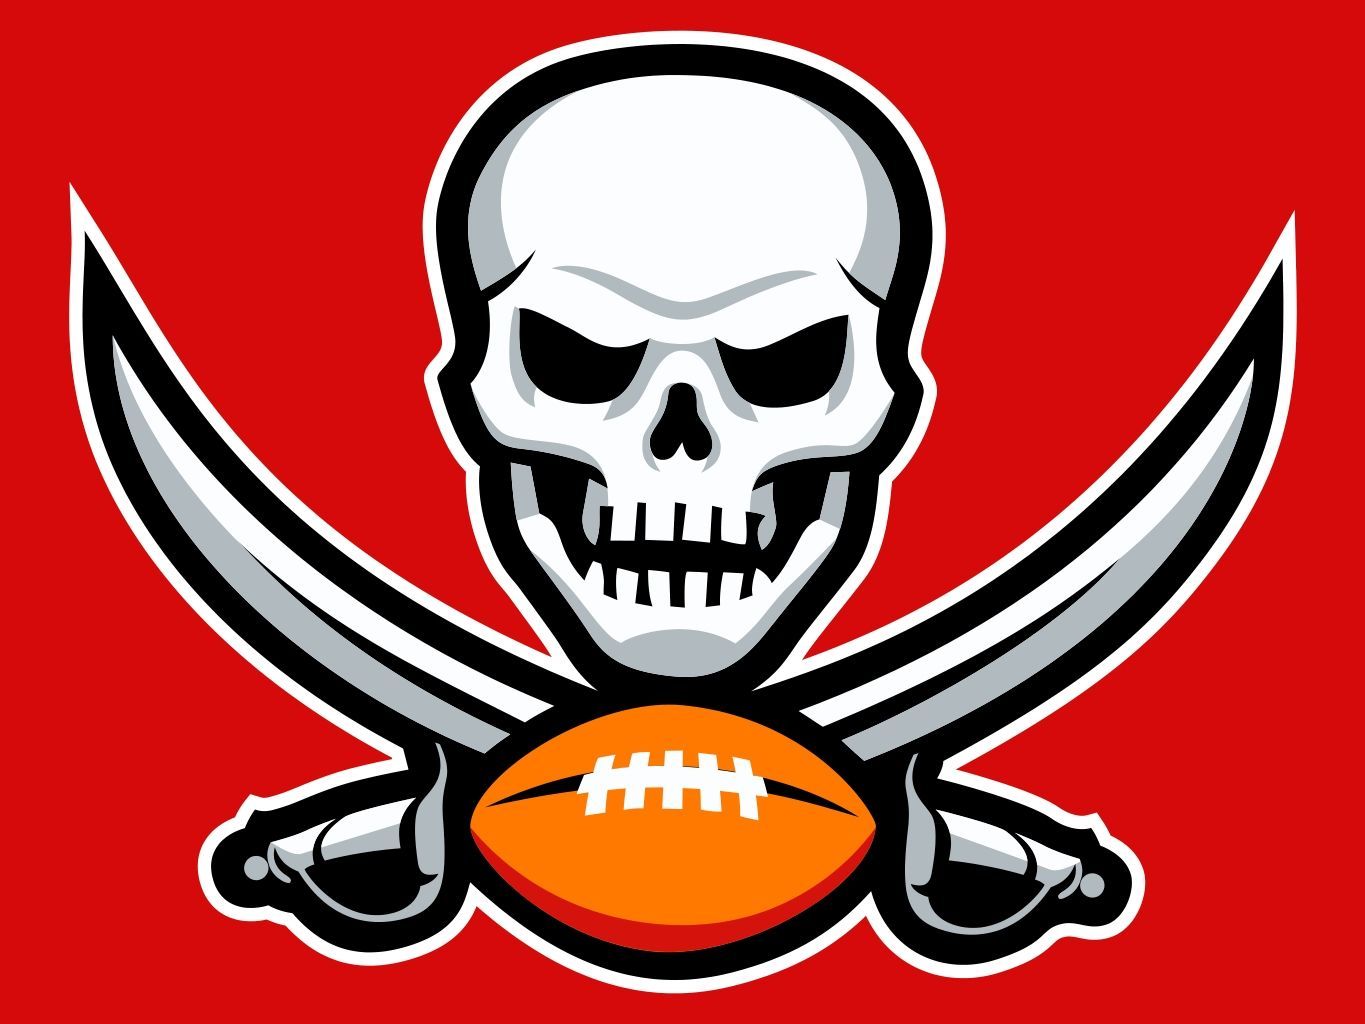 tampa bay buccaneers free agent update tampa bay buccaneers logo tampa bay bucs tampa bay buccaneers tampa bay buccaneers logo